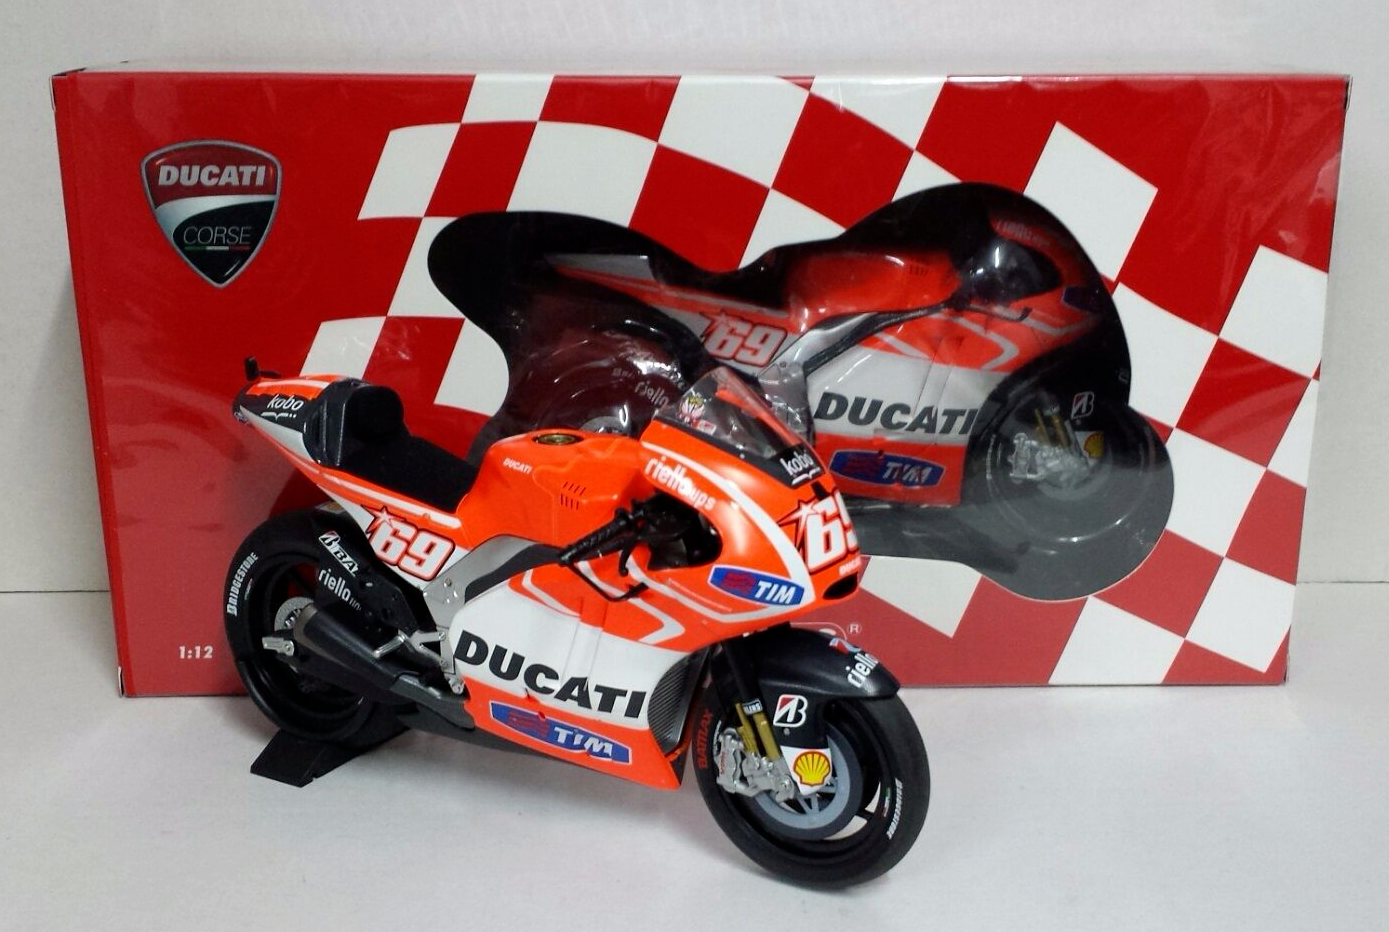 MINICHAMPS NICKY HAYDEN 1/12 DUCATI GP13 MOTOGP 2013 LIMITED EDITION NEW